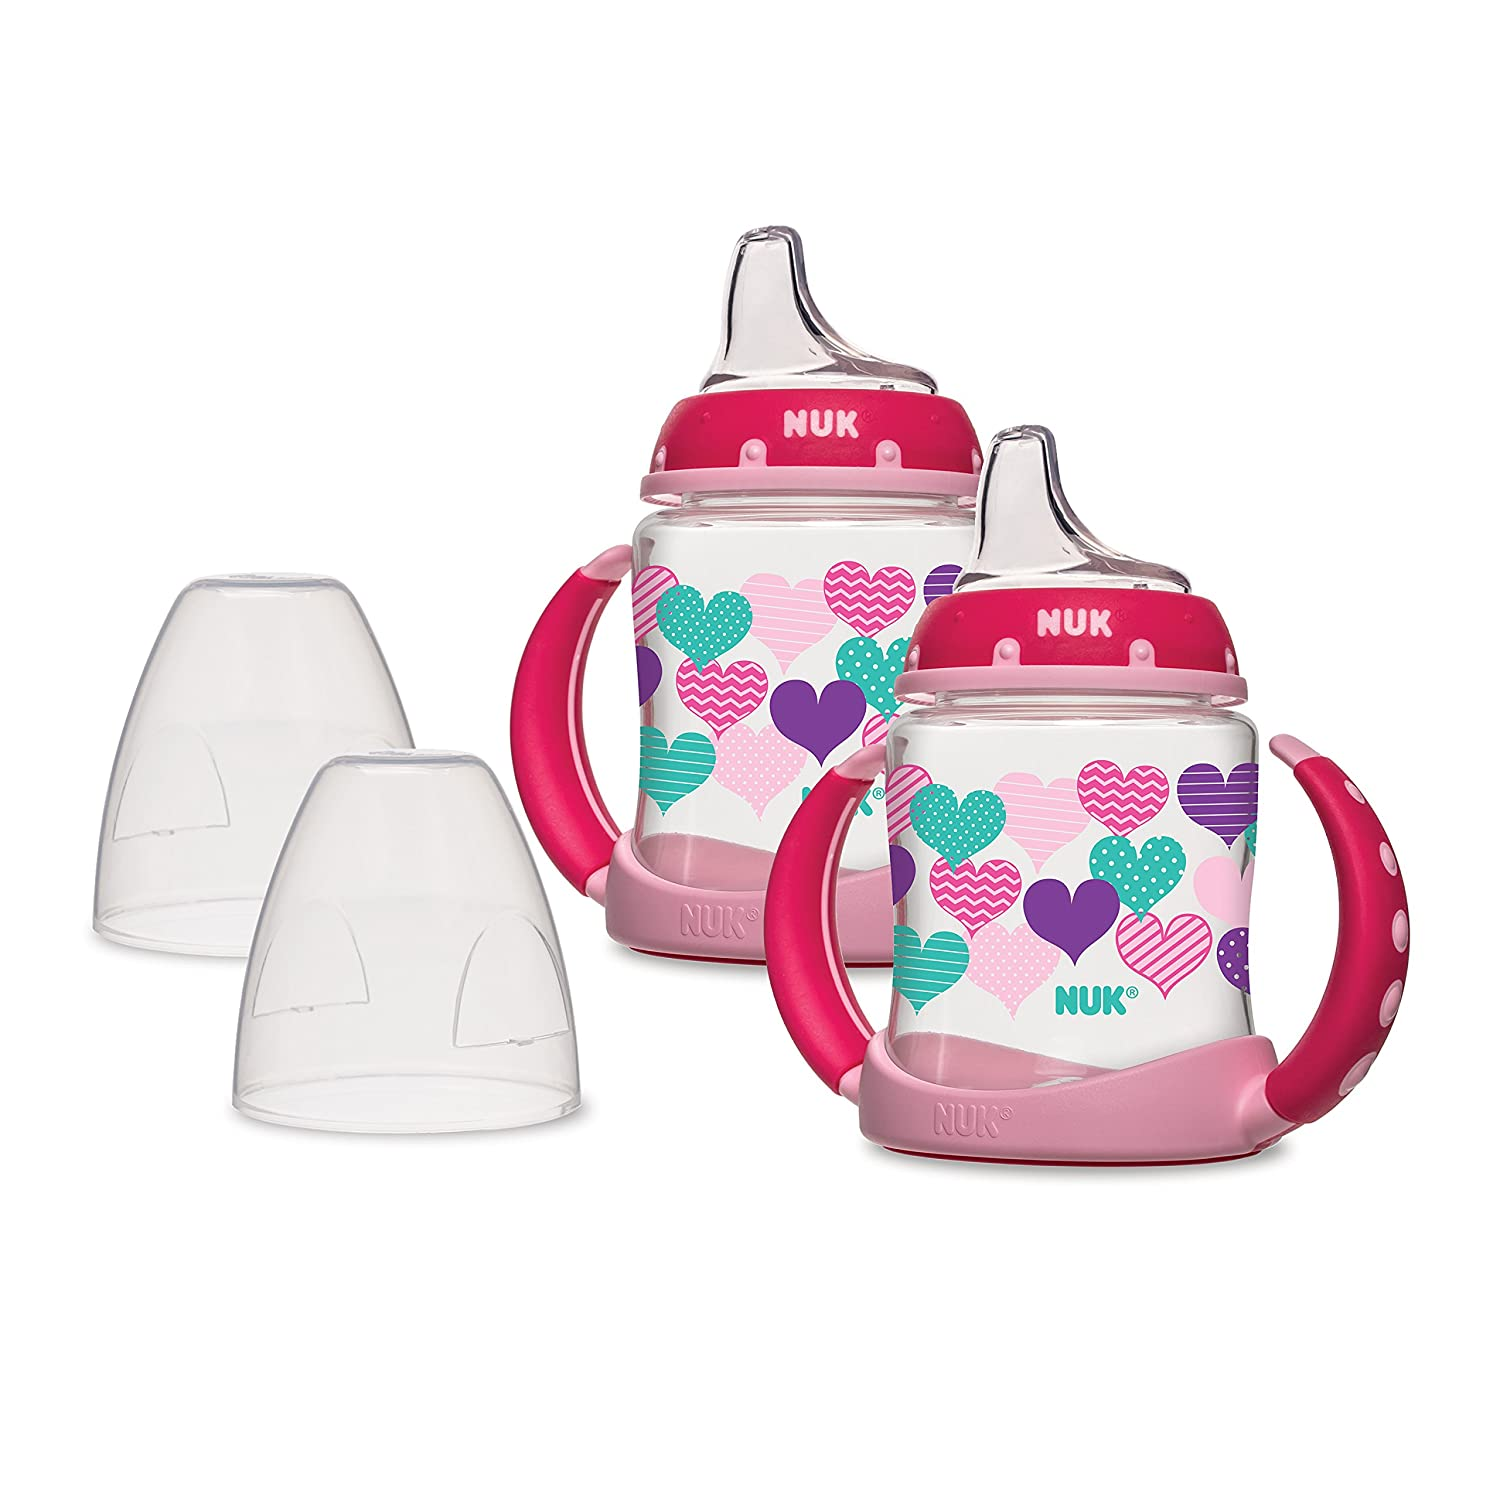 NUK Learner 2-Piece Cup, Pink 2068273